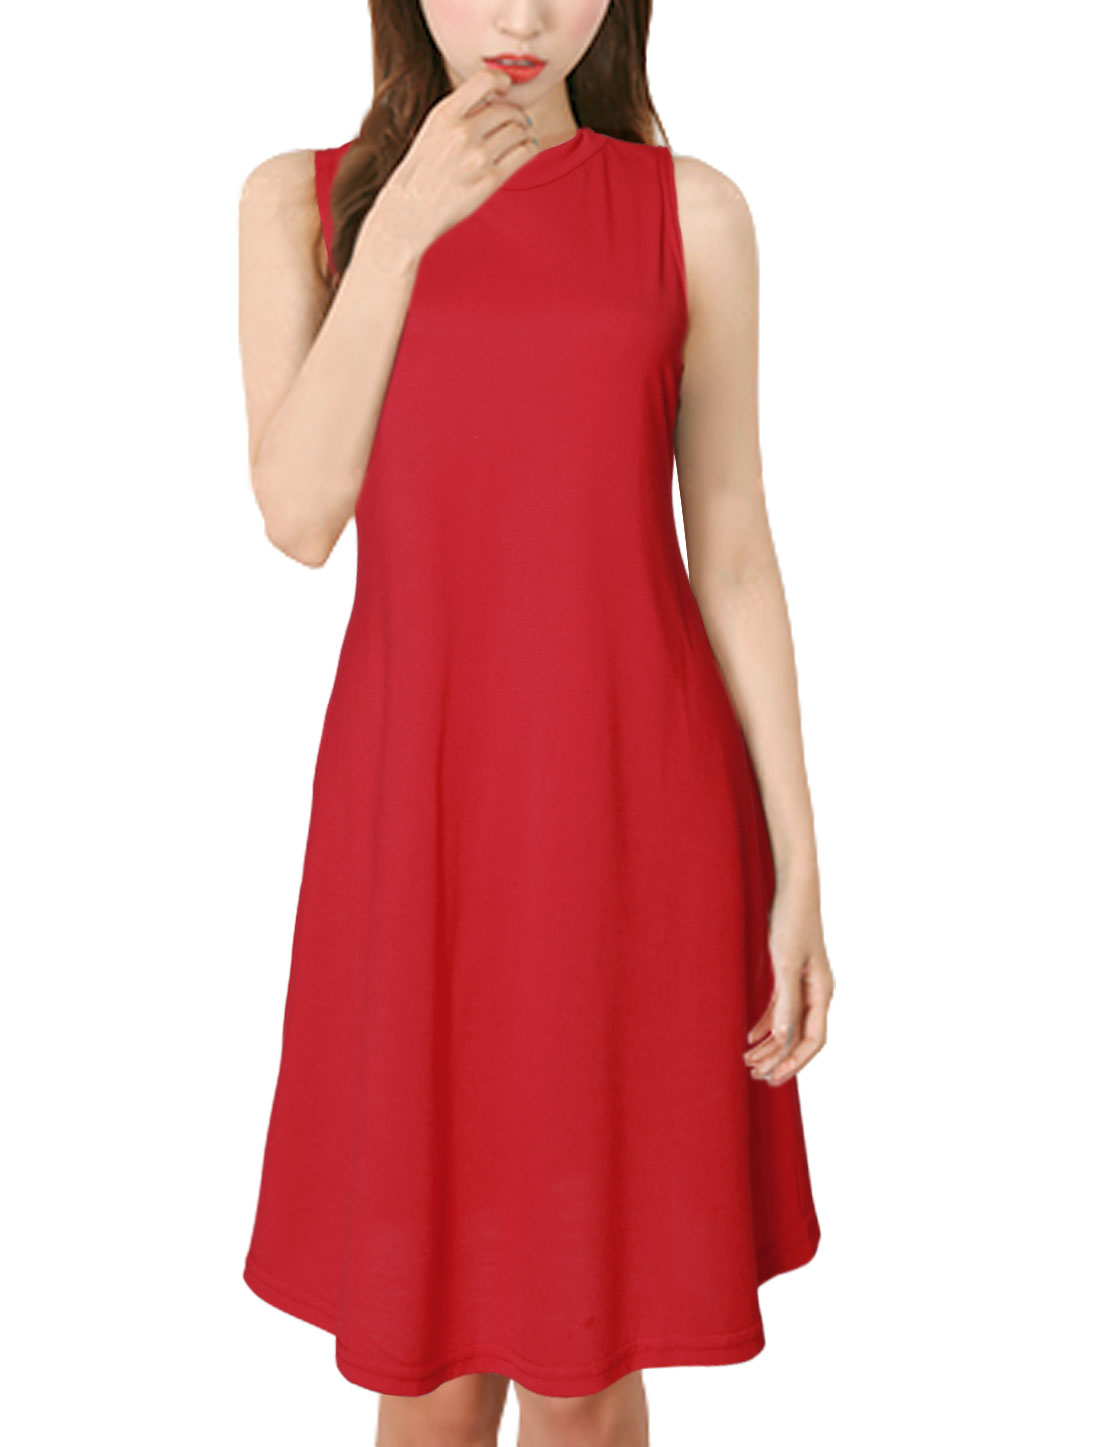 Women Crew Neck Sleeveless A Line Casual Skater Dress Red S